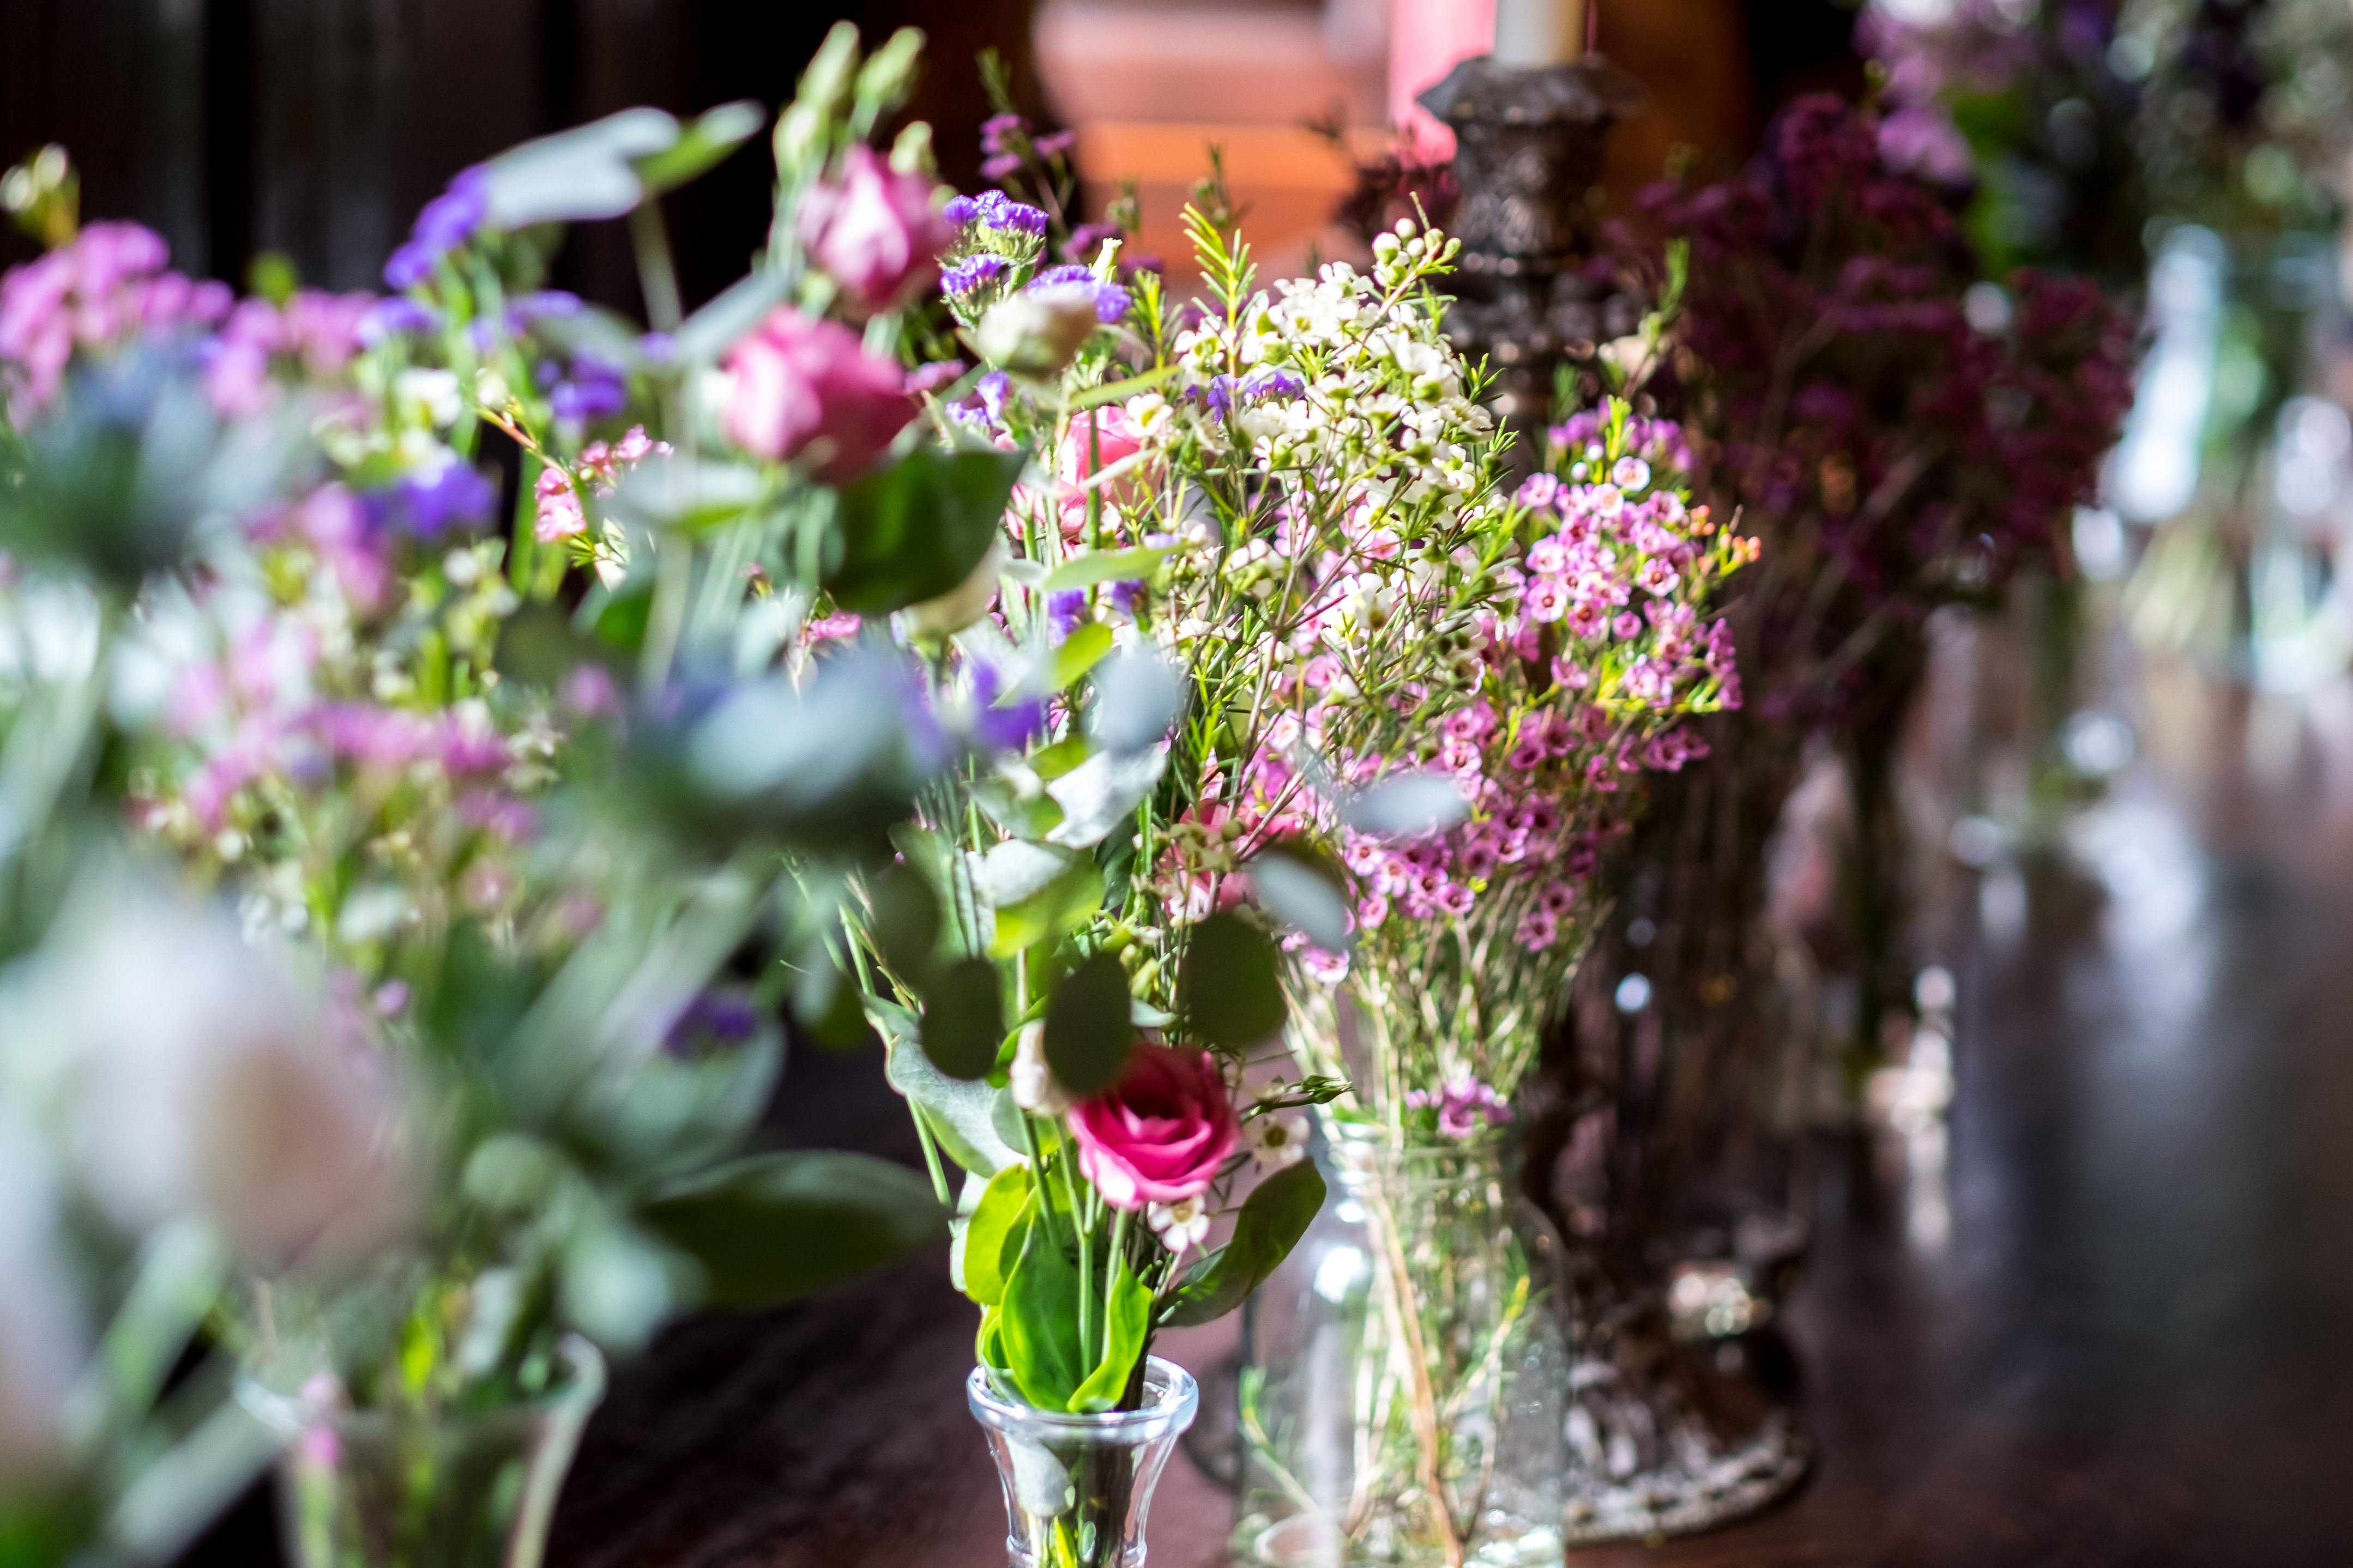 Flowers in vases for the wedding breakfast tables.